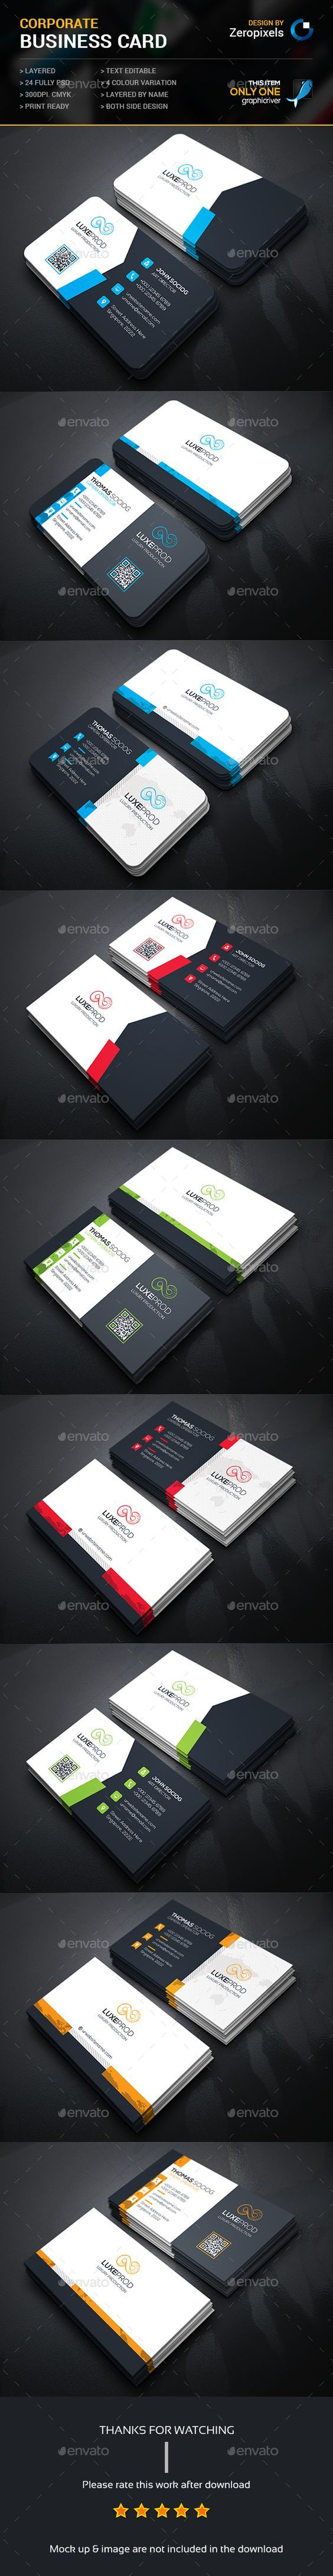 10 best business cards images on pinterest